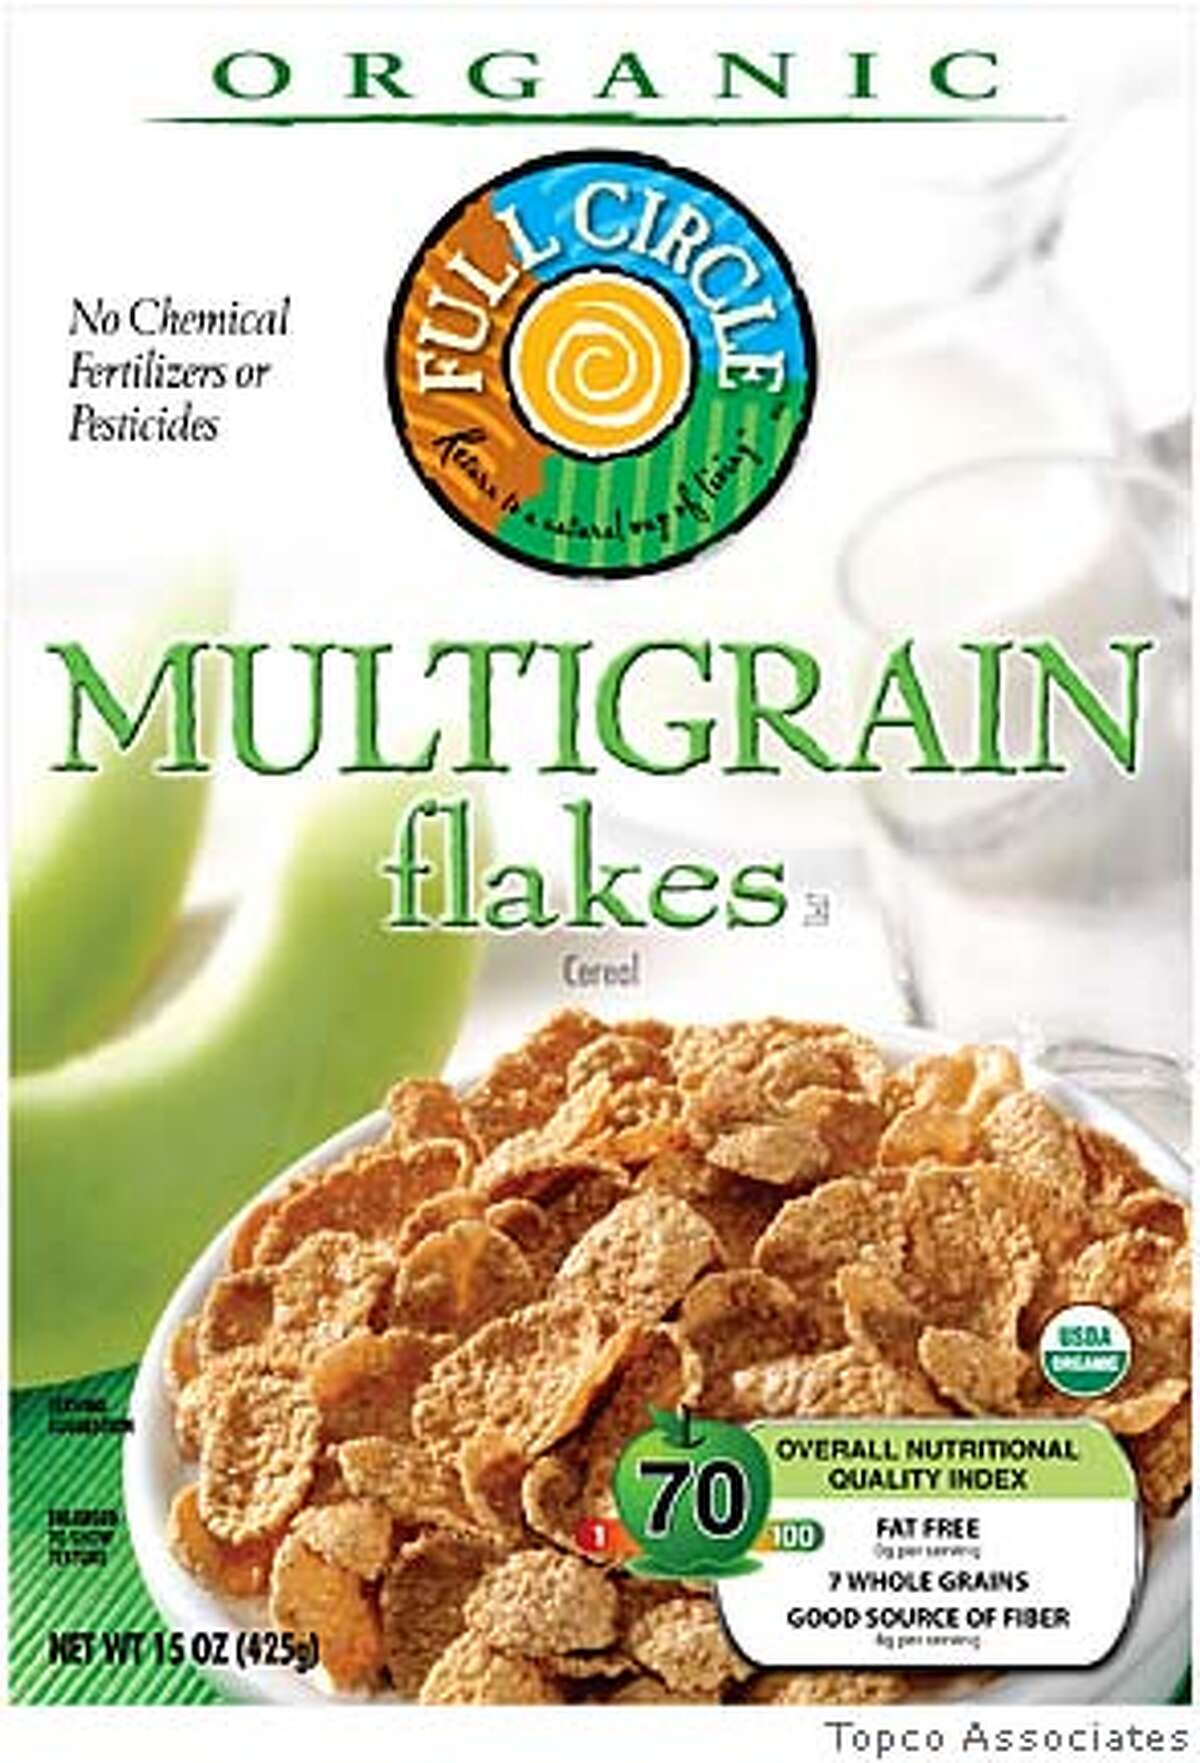 New label on a cereal box